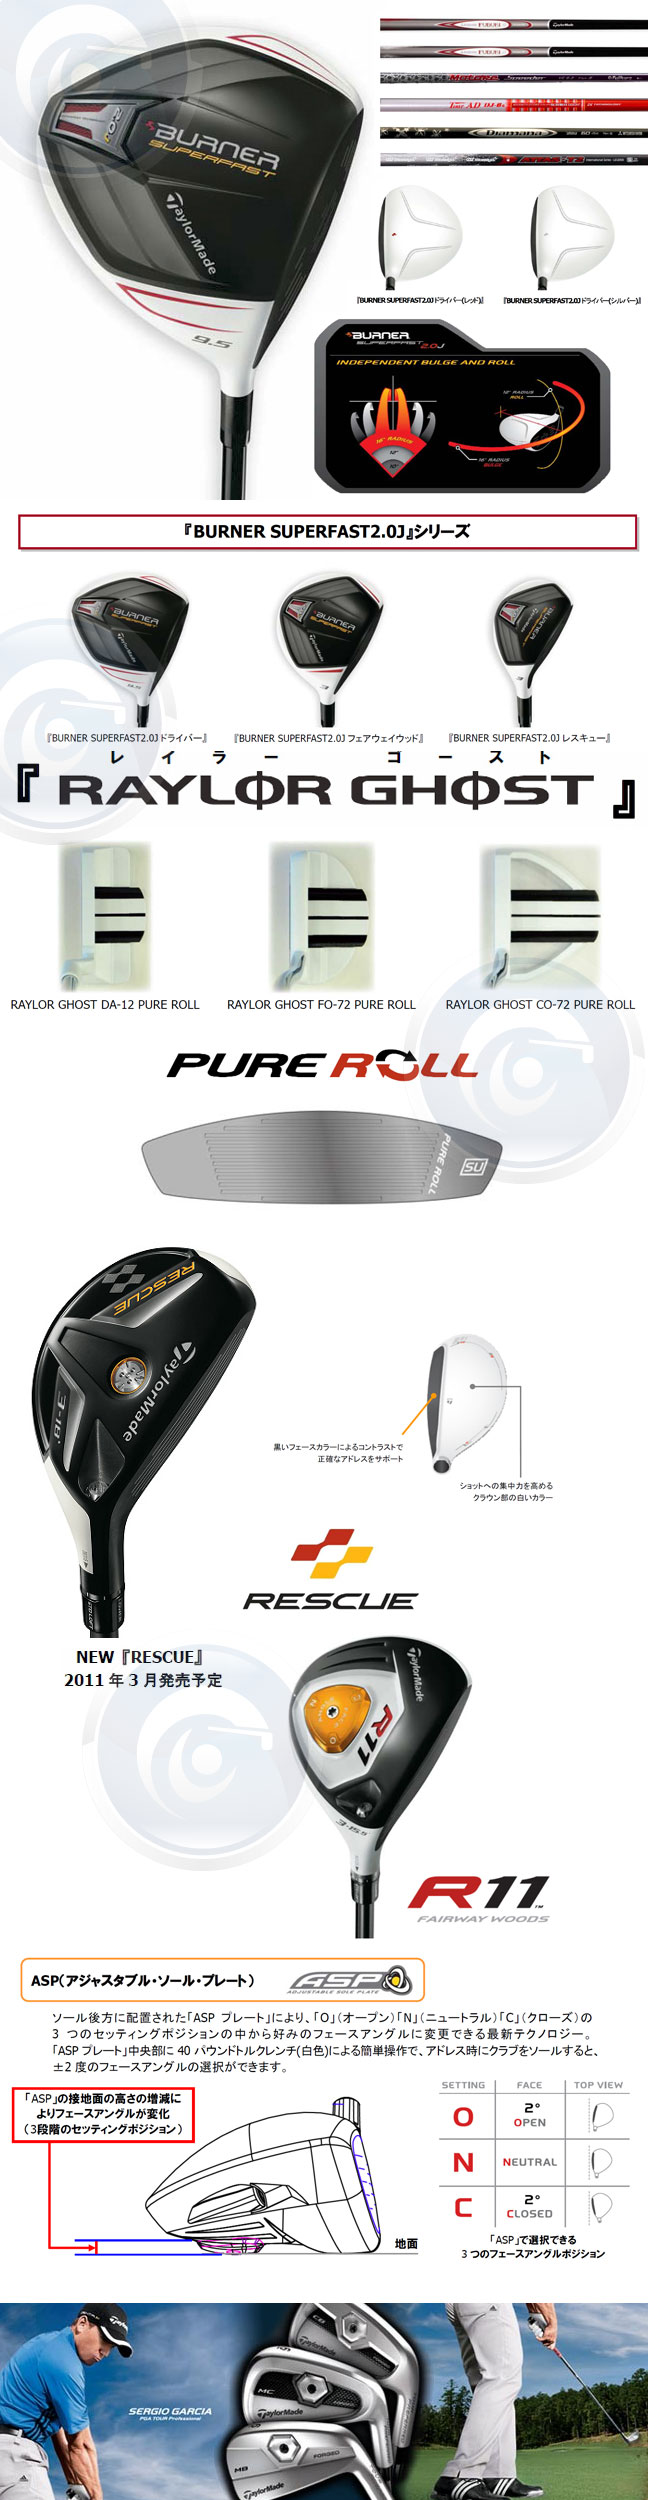 Taylormade Japan 2011 Product Announcements! - TourSpecGolf